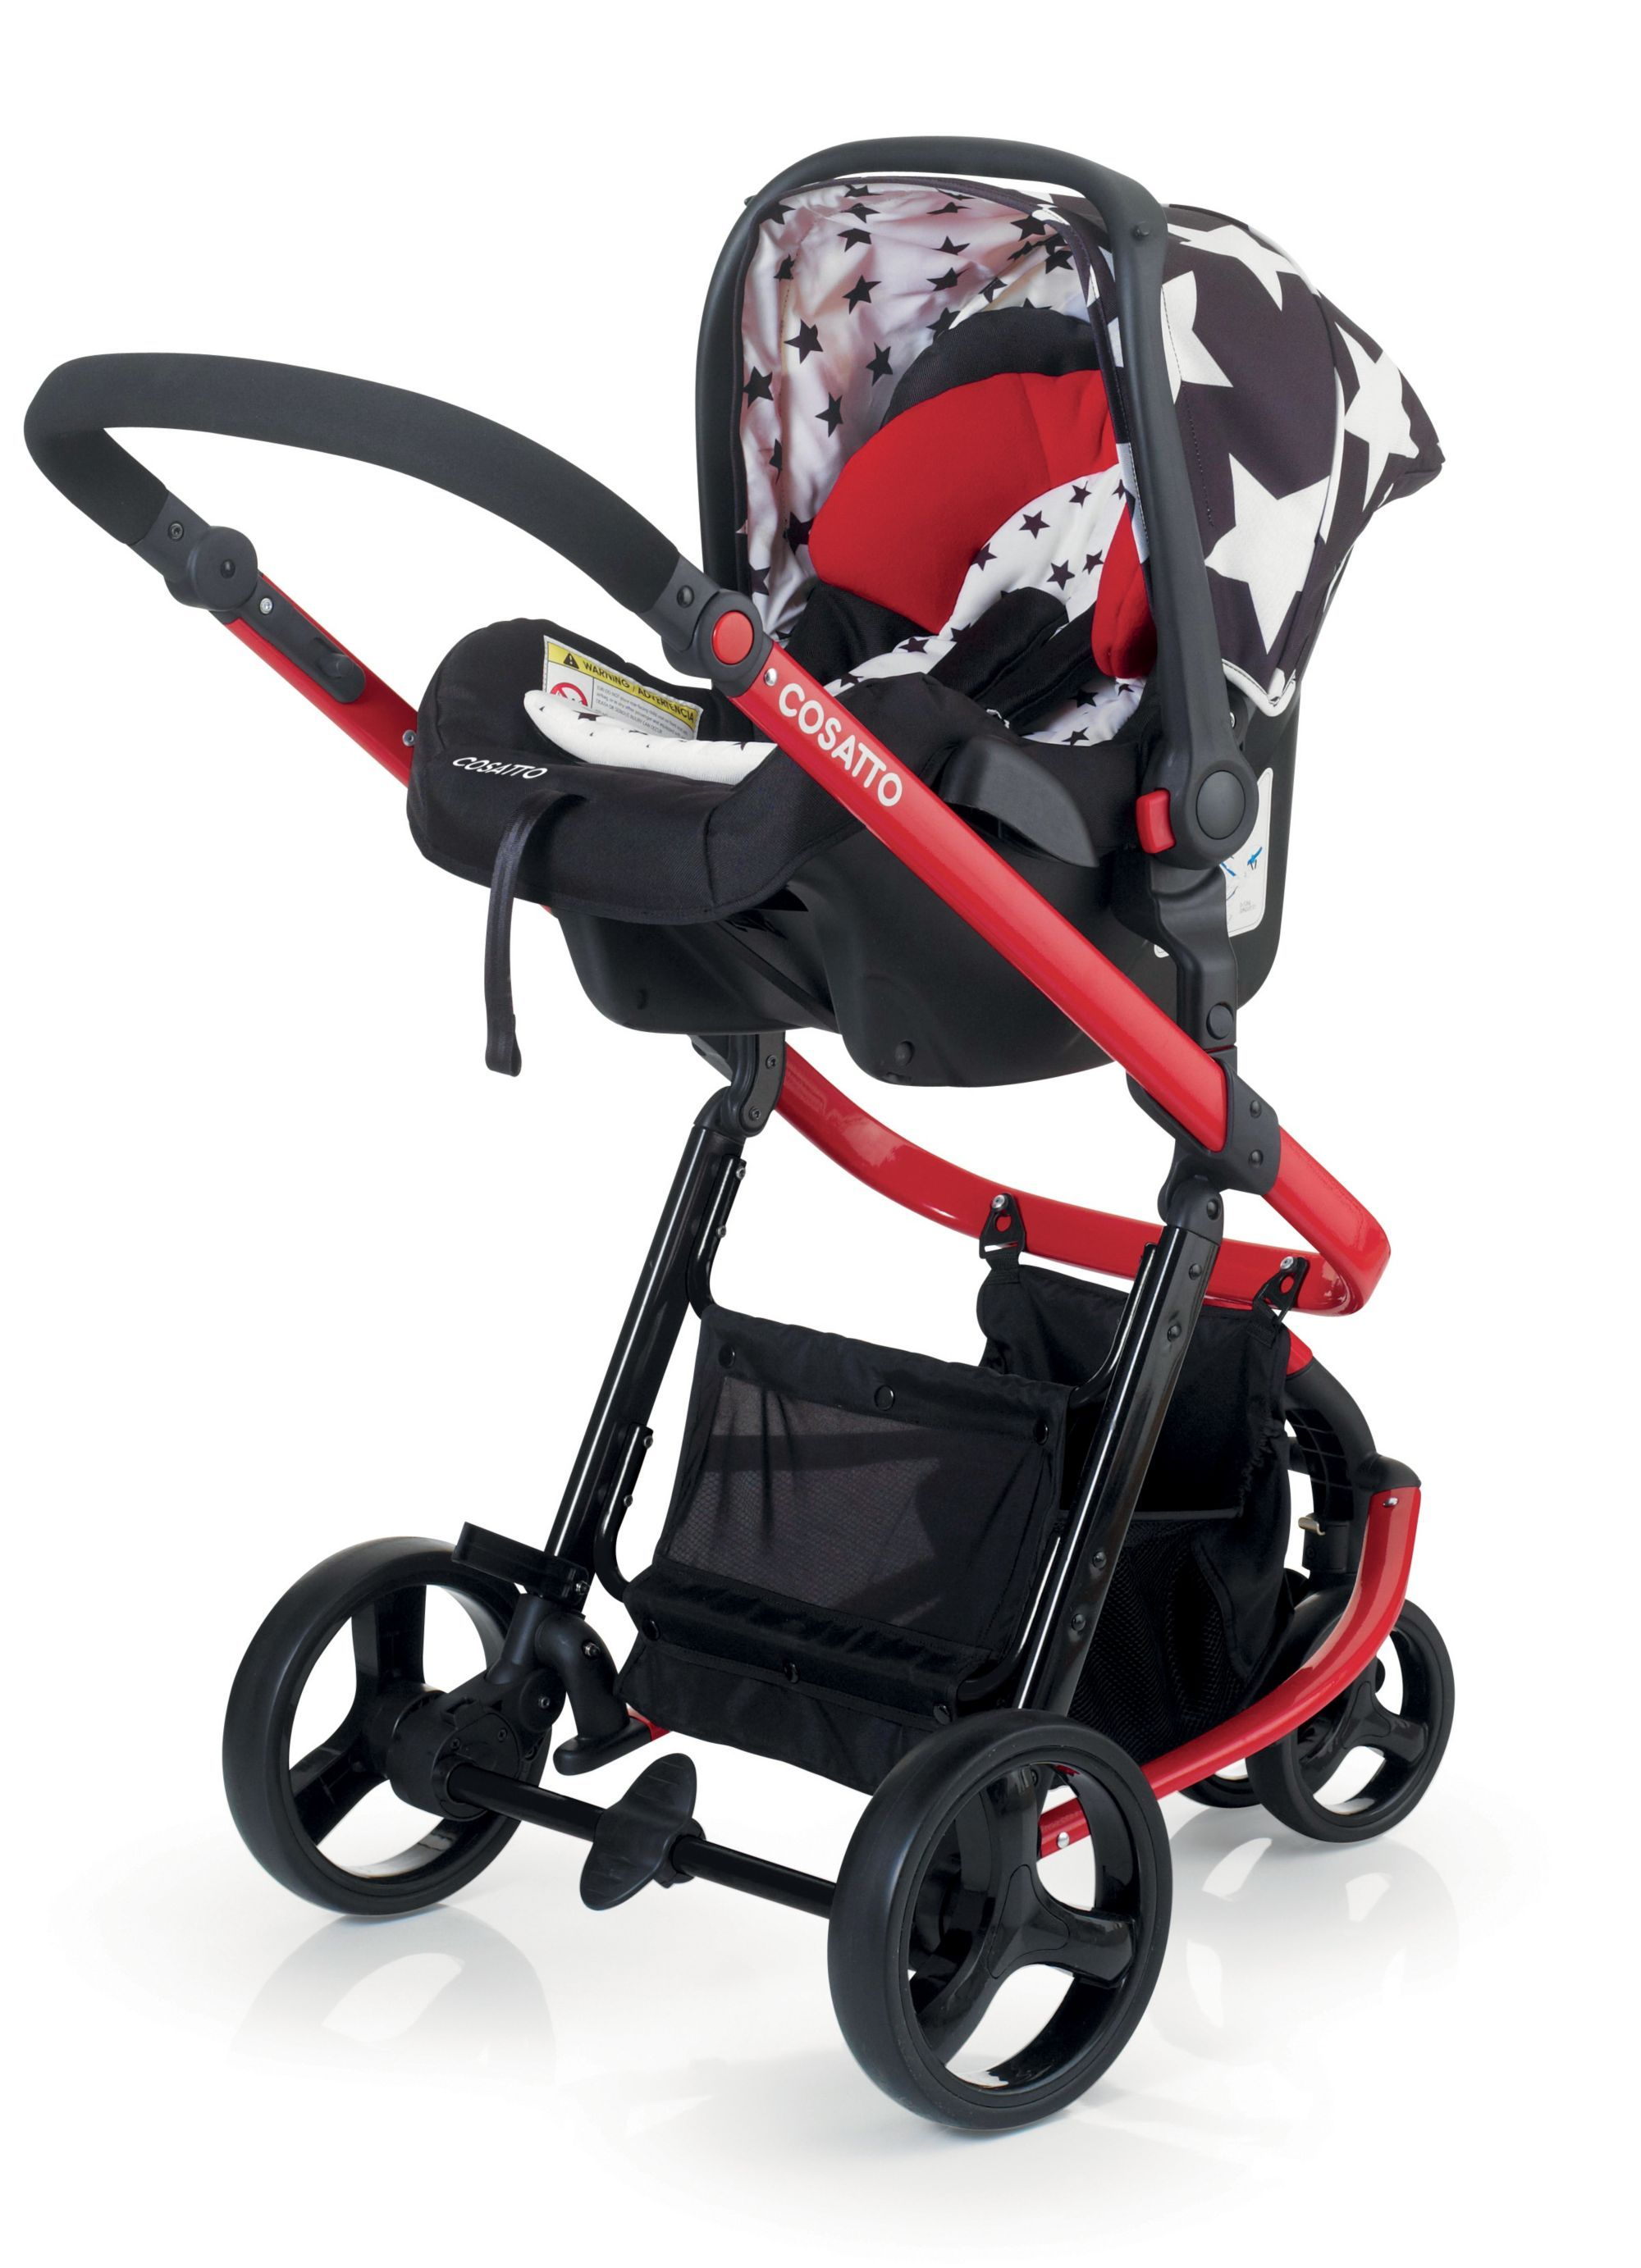 Baby trend all star high chair - Cosatto Hold Baby Car Seat All Star